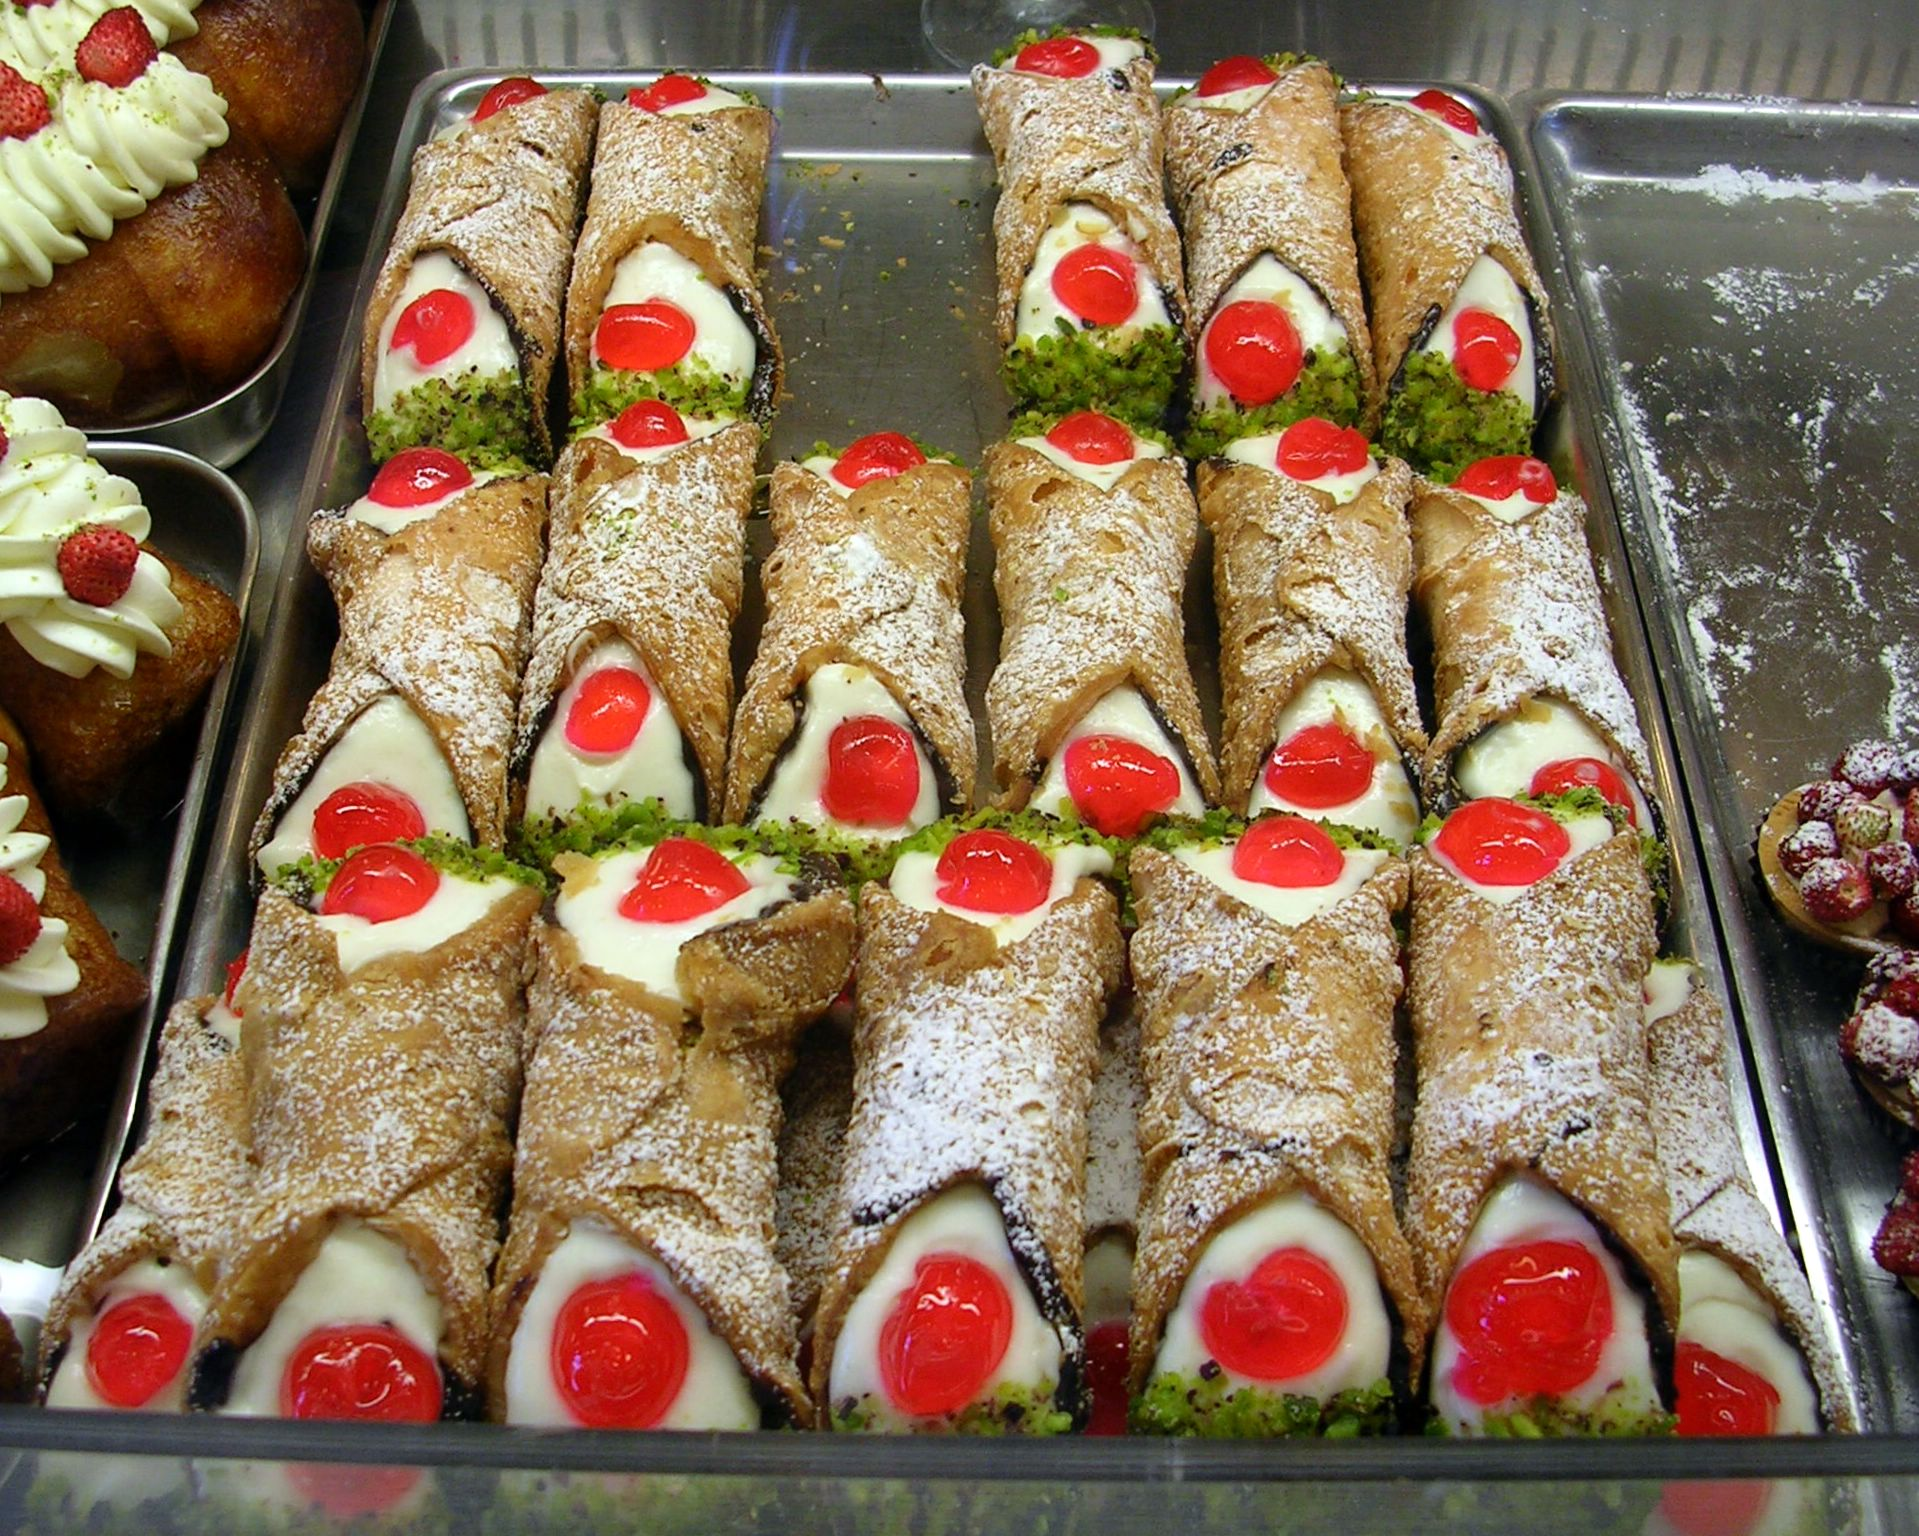 Cucina Siciliana File Cannoli Siciliani Jpg Wikipedia